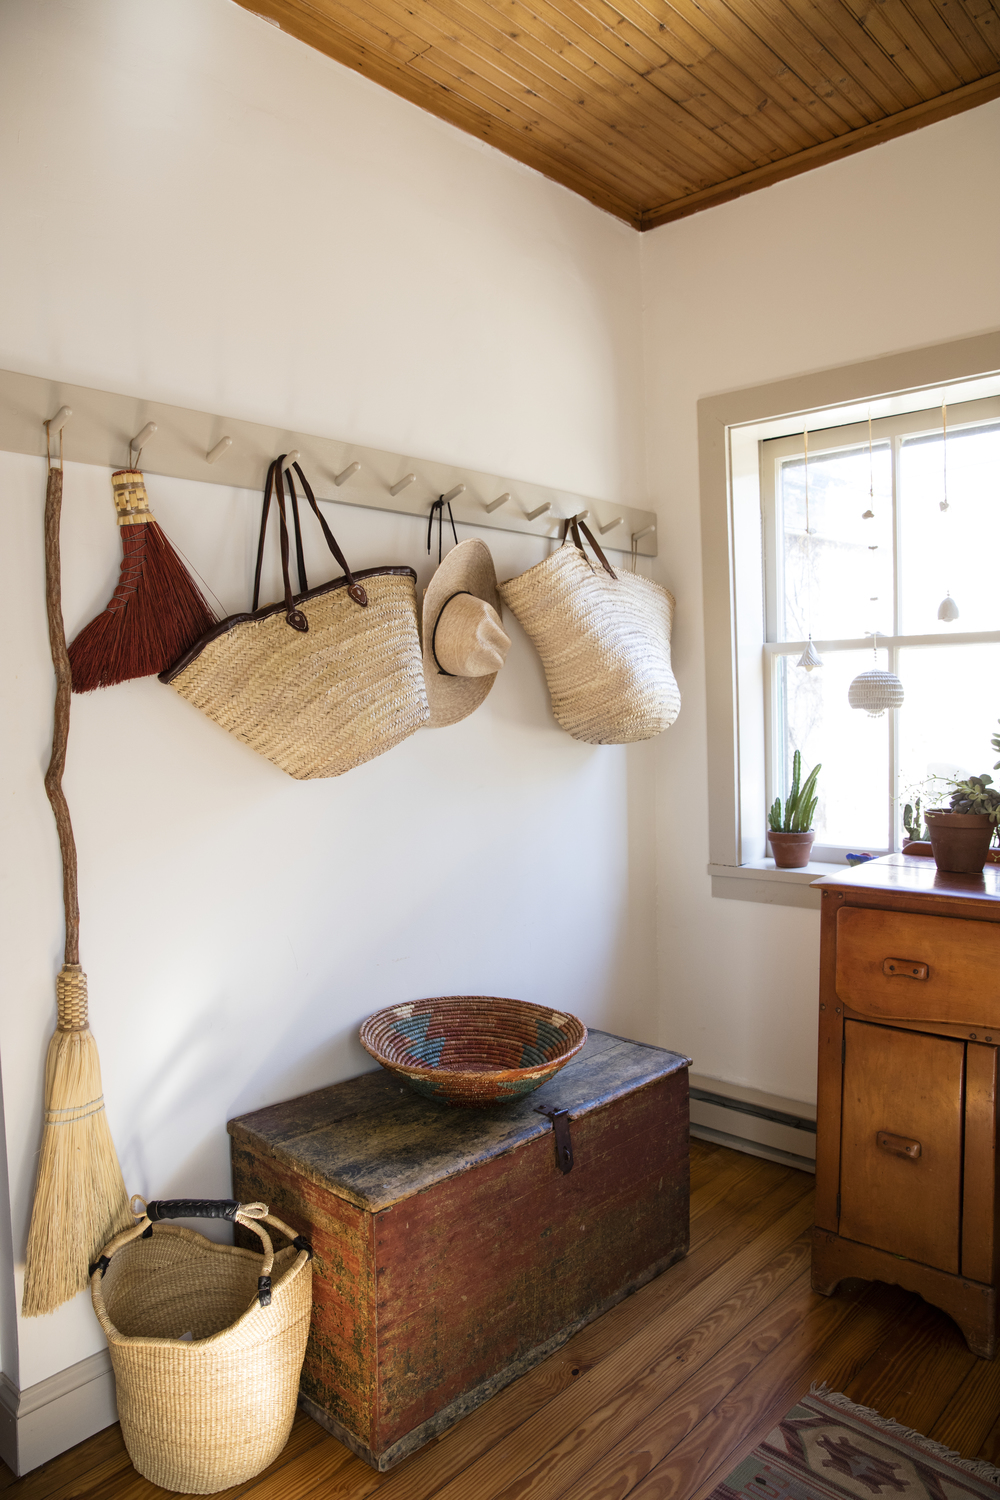 Pretty brooms and basket-storage.